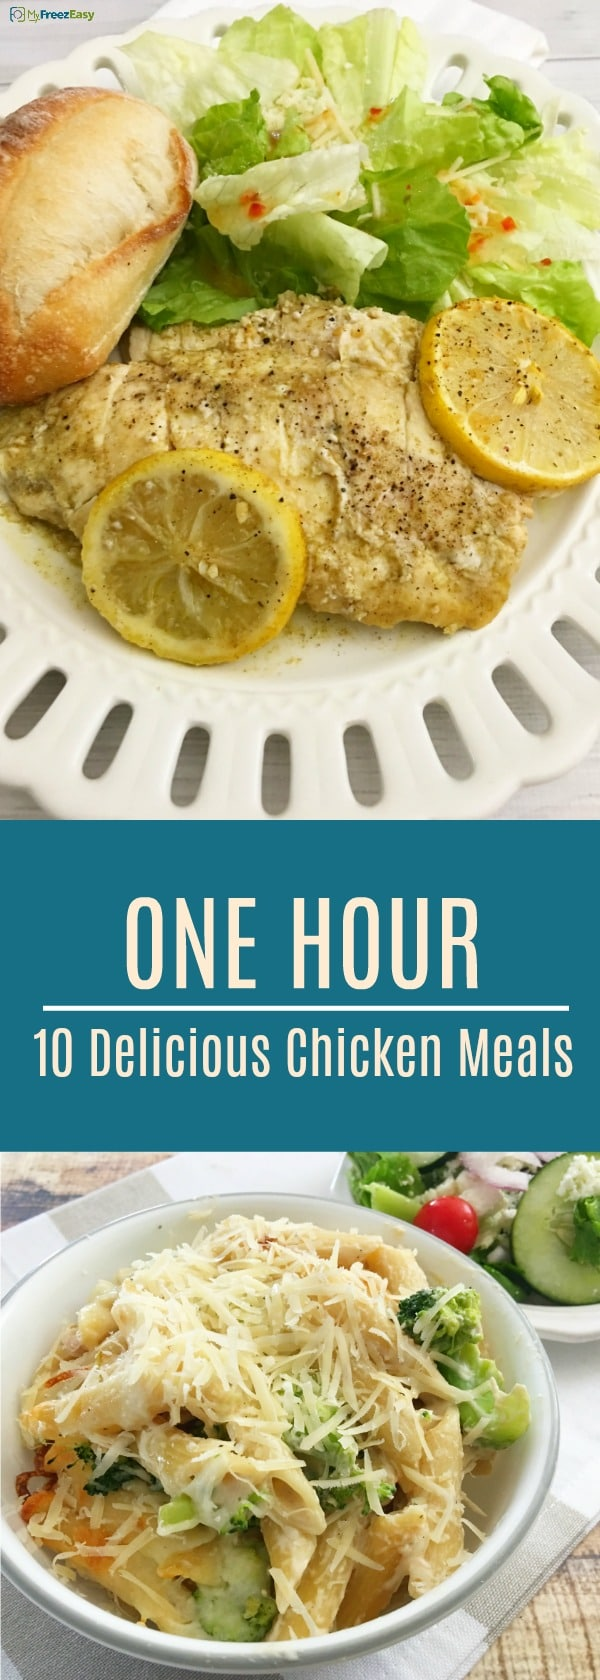 10 Delicious Chicken Meals in One Hour